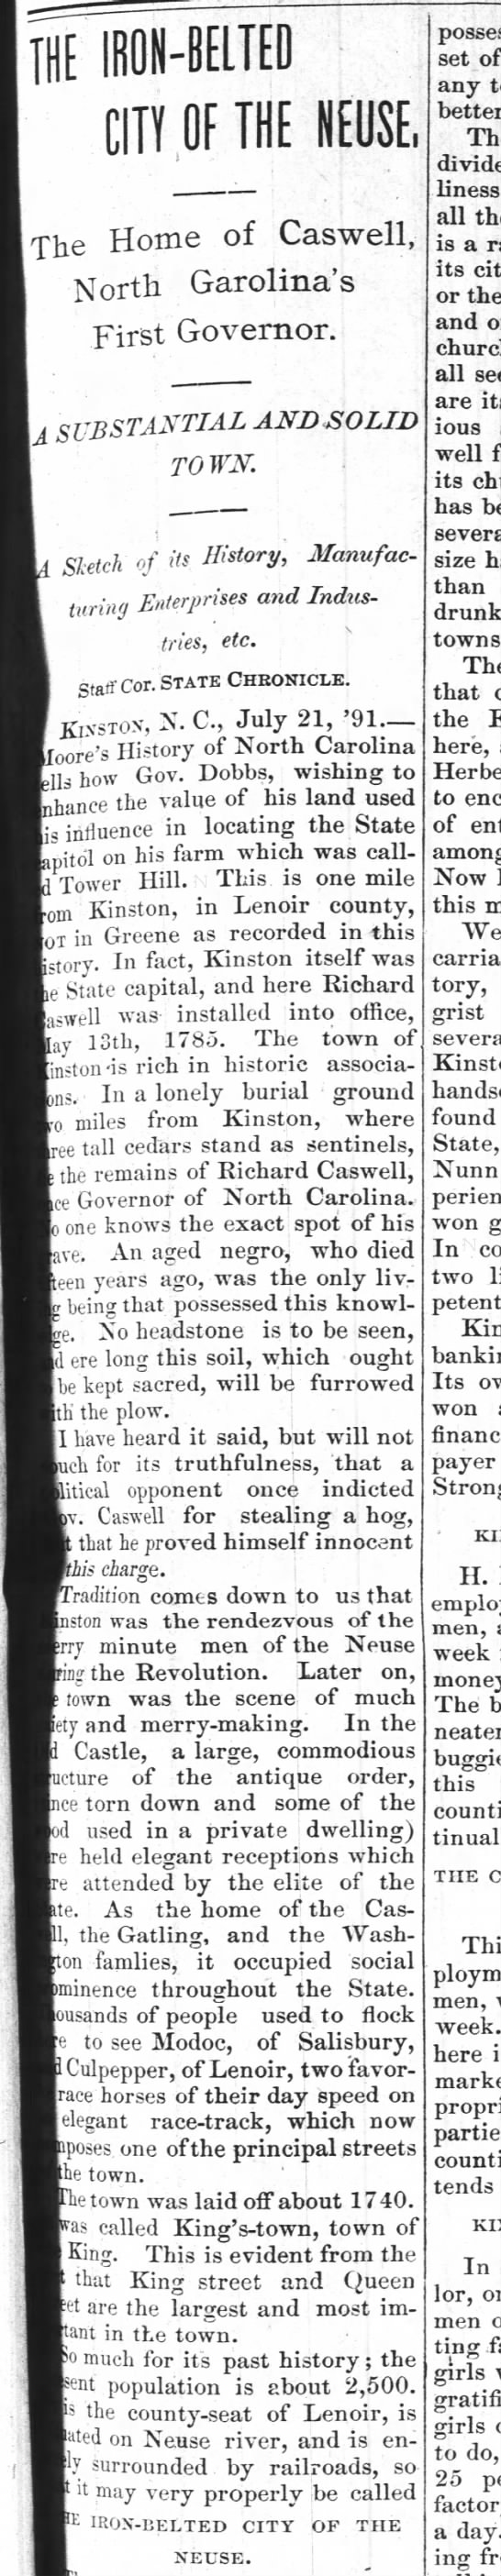 Kinston History  Iron Belted City The State Chroncile(Raleigh) July 23, 1891 pg. 7 - THE IRON-BELTED IRON-BELTED IRON-BELTED niTu nr...